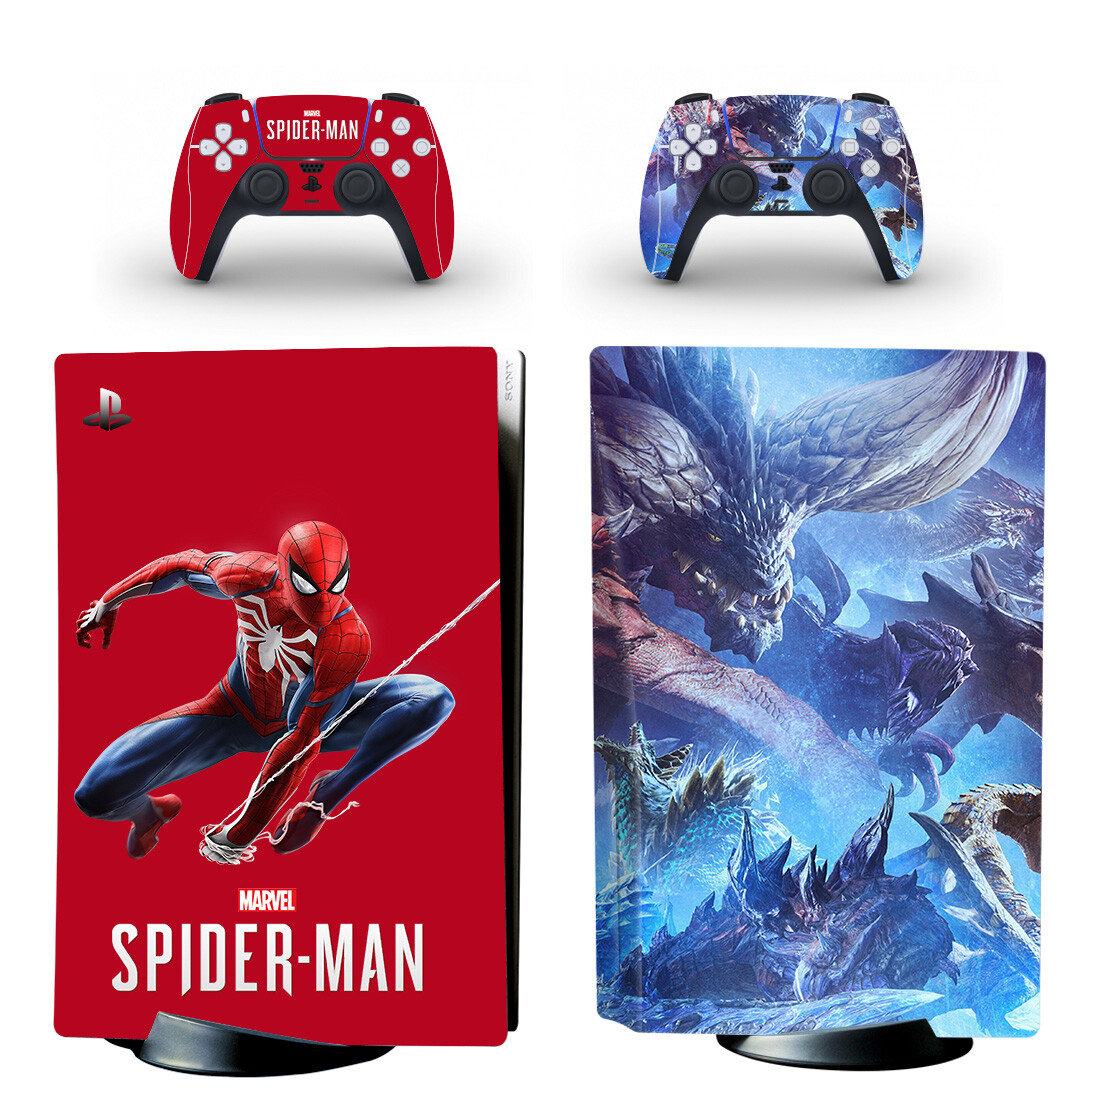 Marvel Spider Man Skin Sticker For PS5 Skin And Controllers